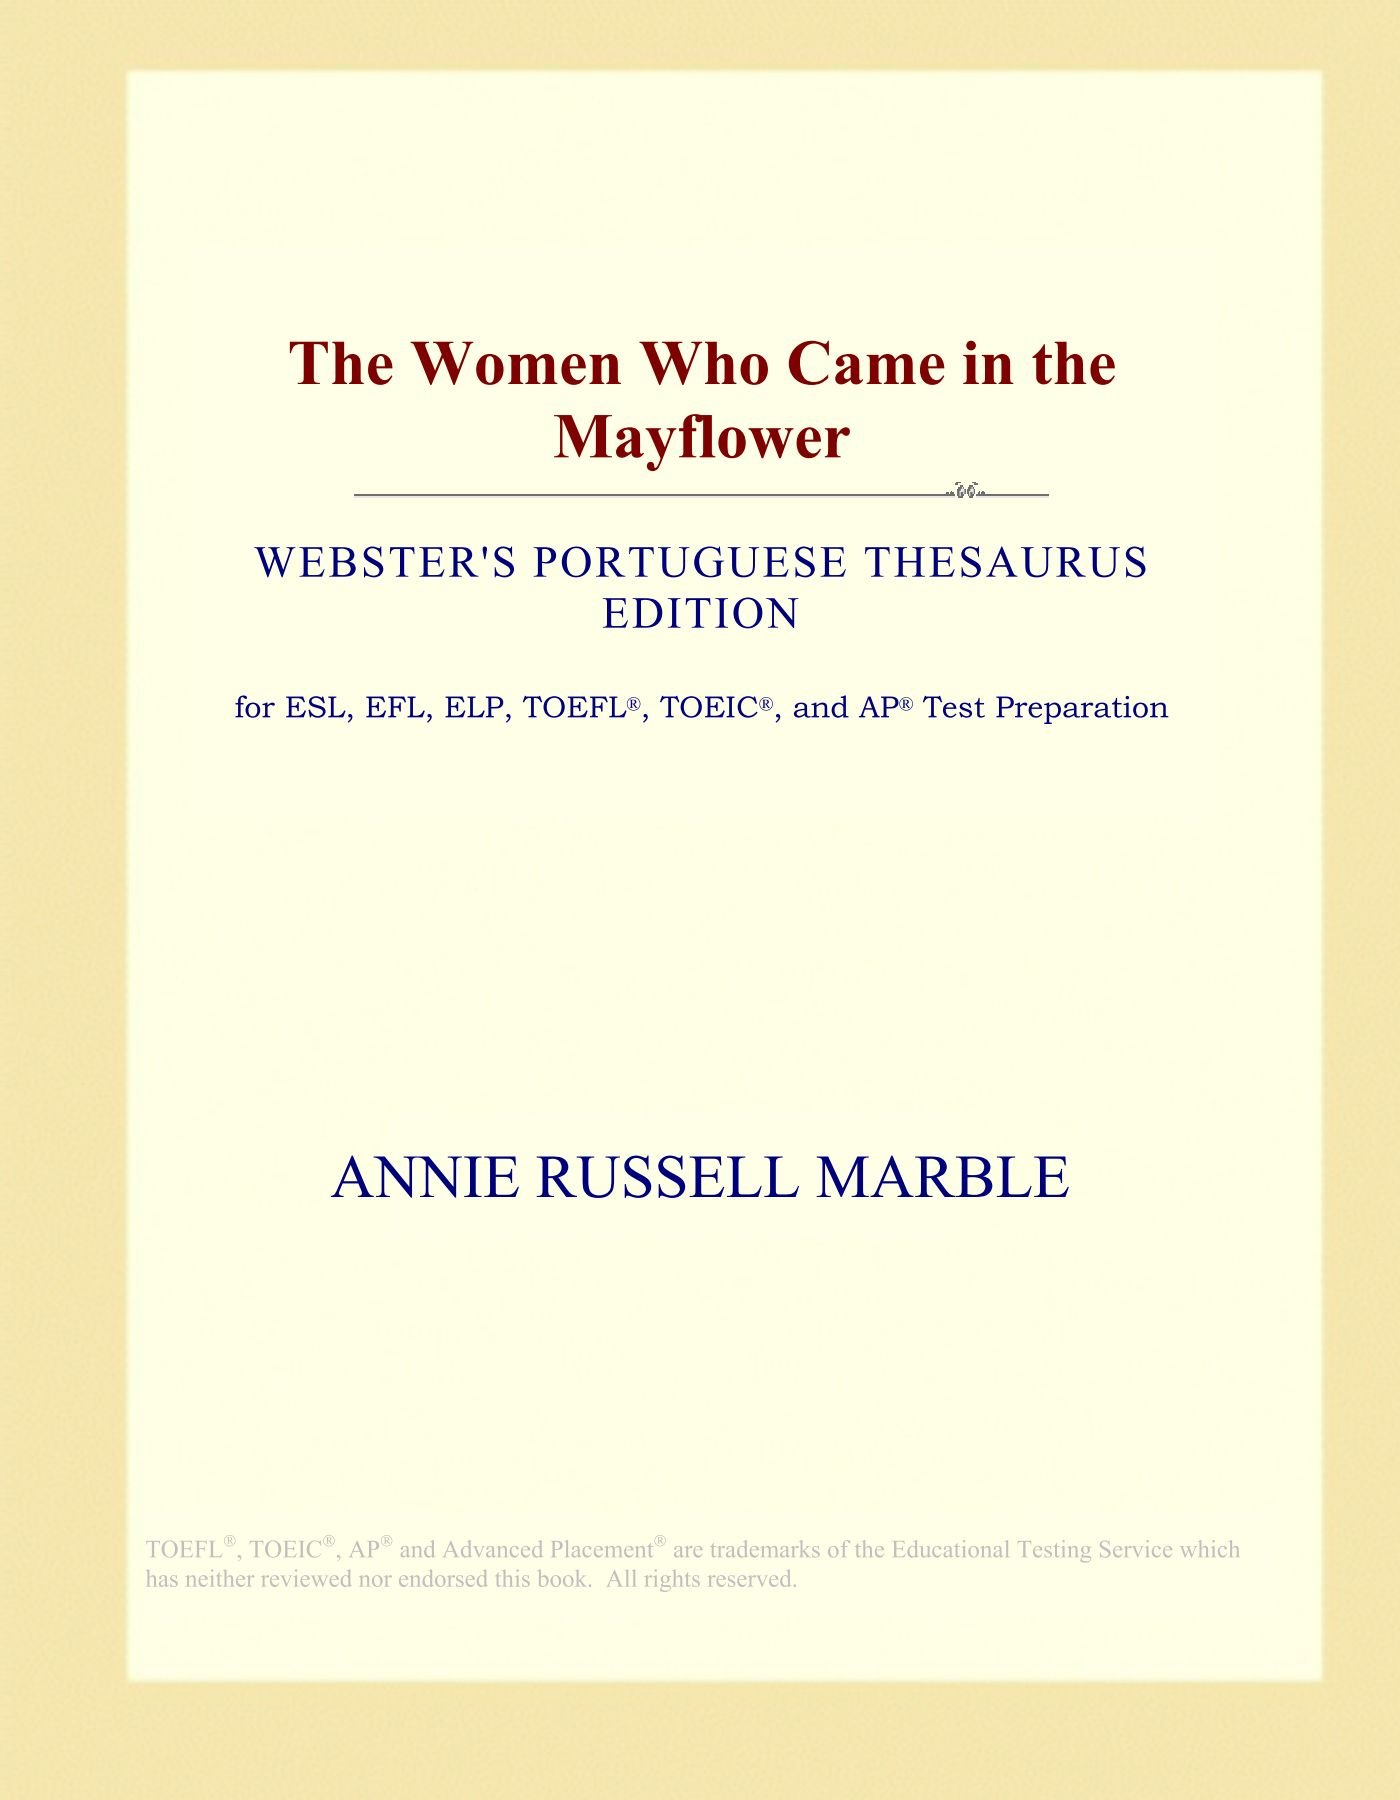 Buy The Women Who Came in the Mayflower (Webster's Portuguese Thesaurus  Edition) Book Online at Low Prices in India | The Women Who Came in the  Mayflower ...